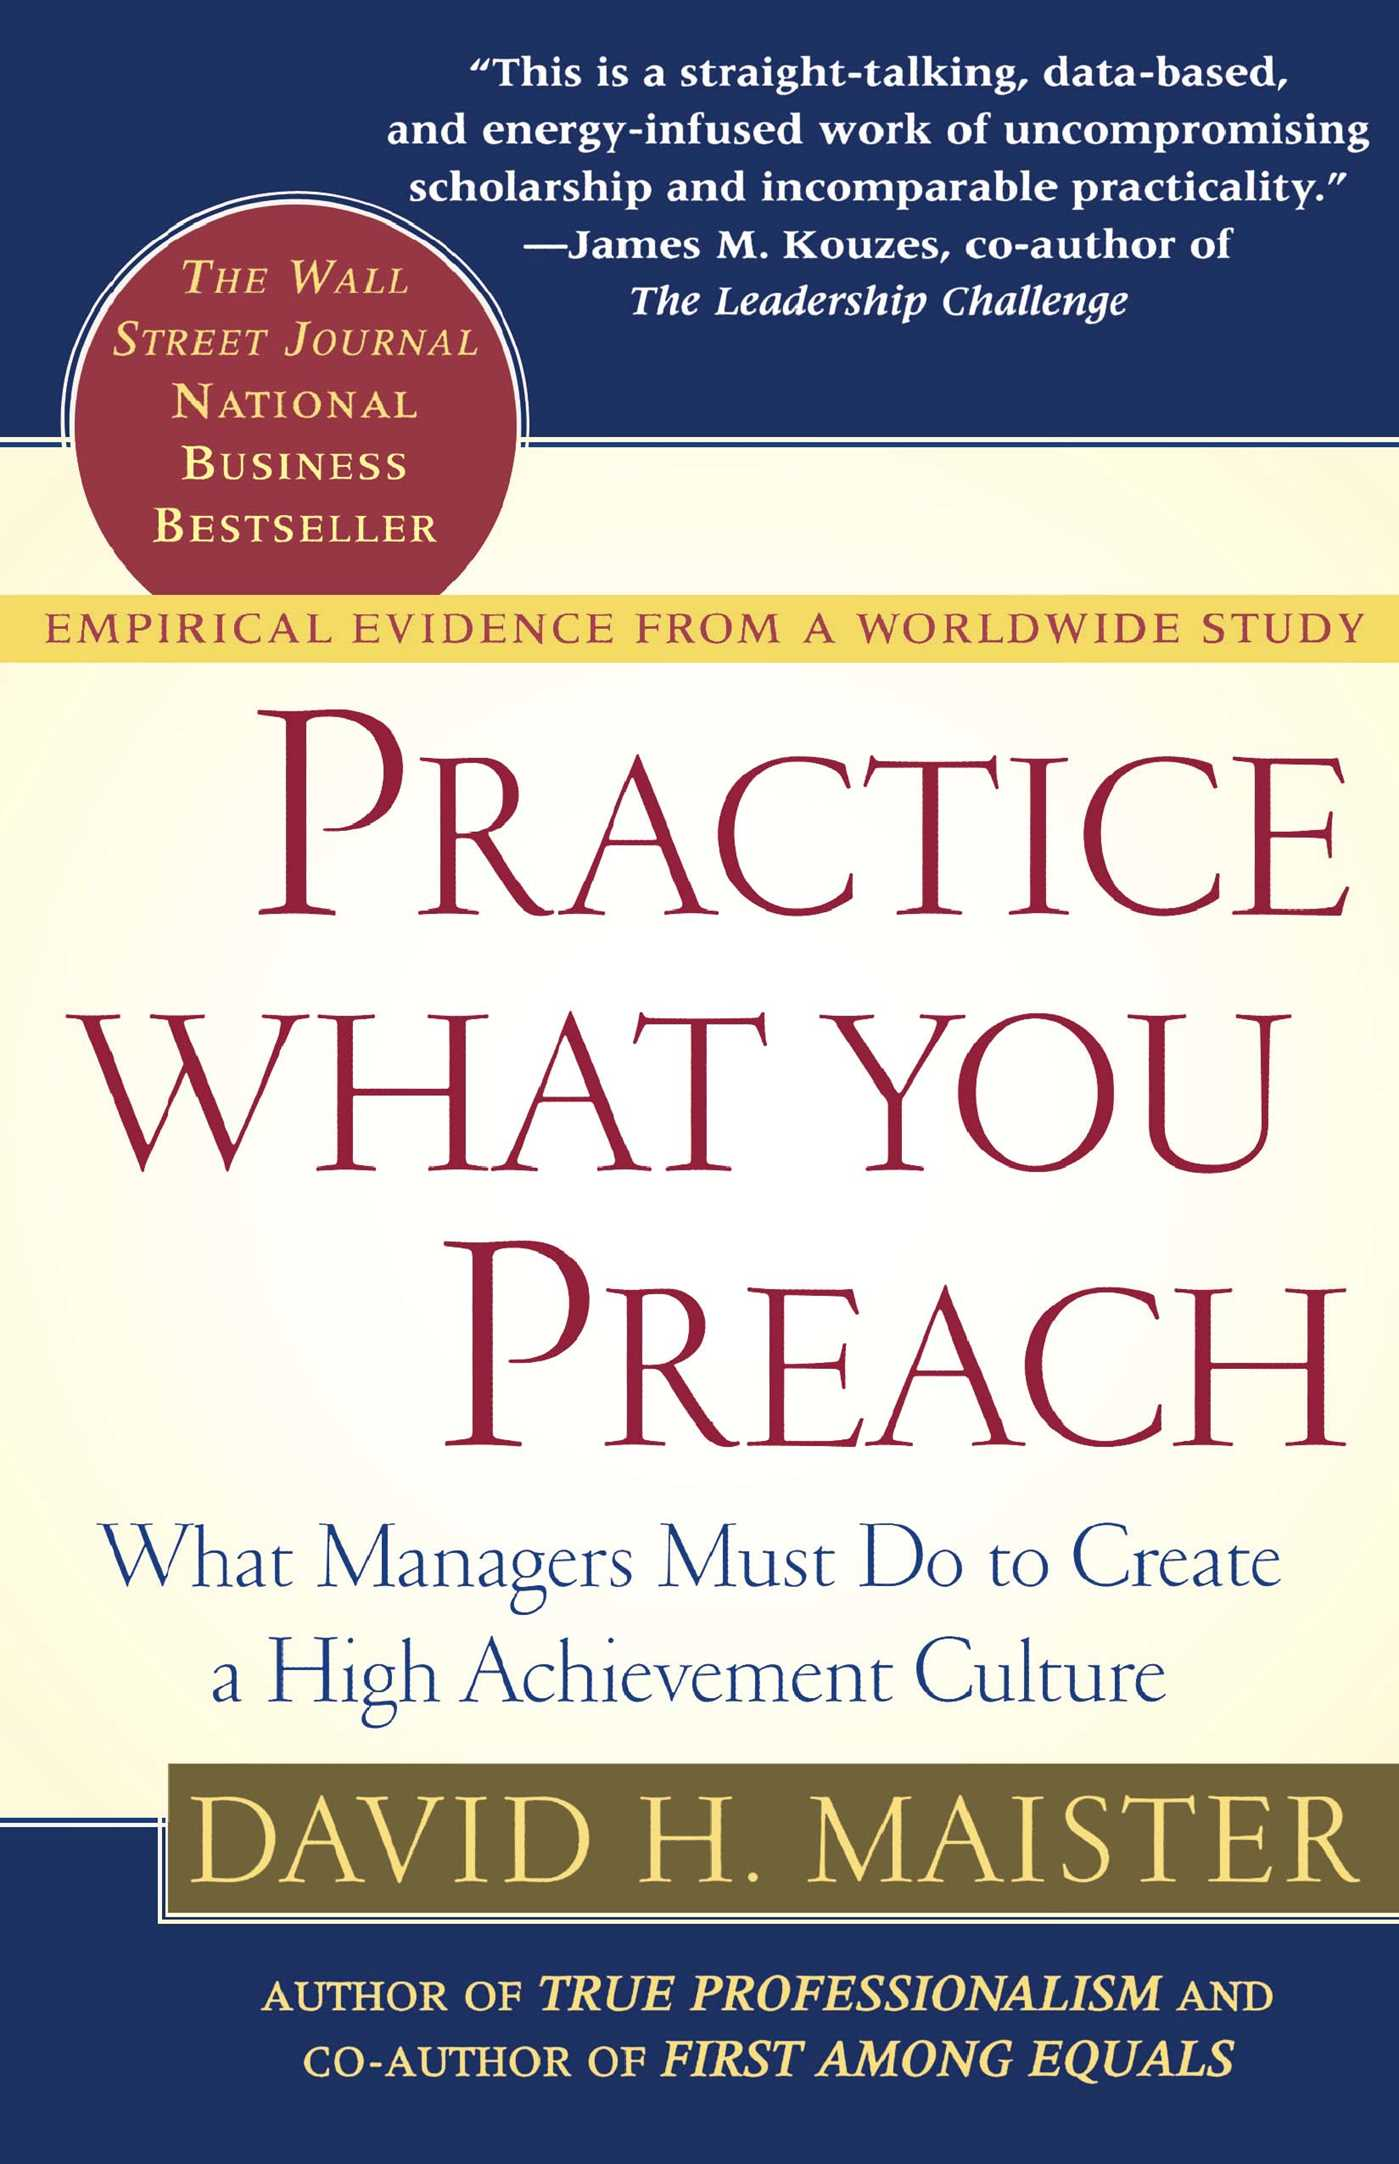 Book Cover Image (jpg): Practice What You Preach